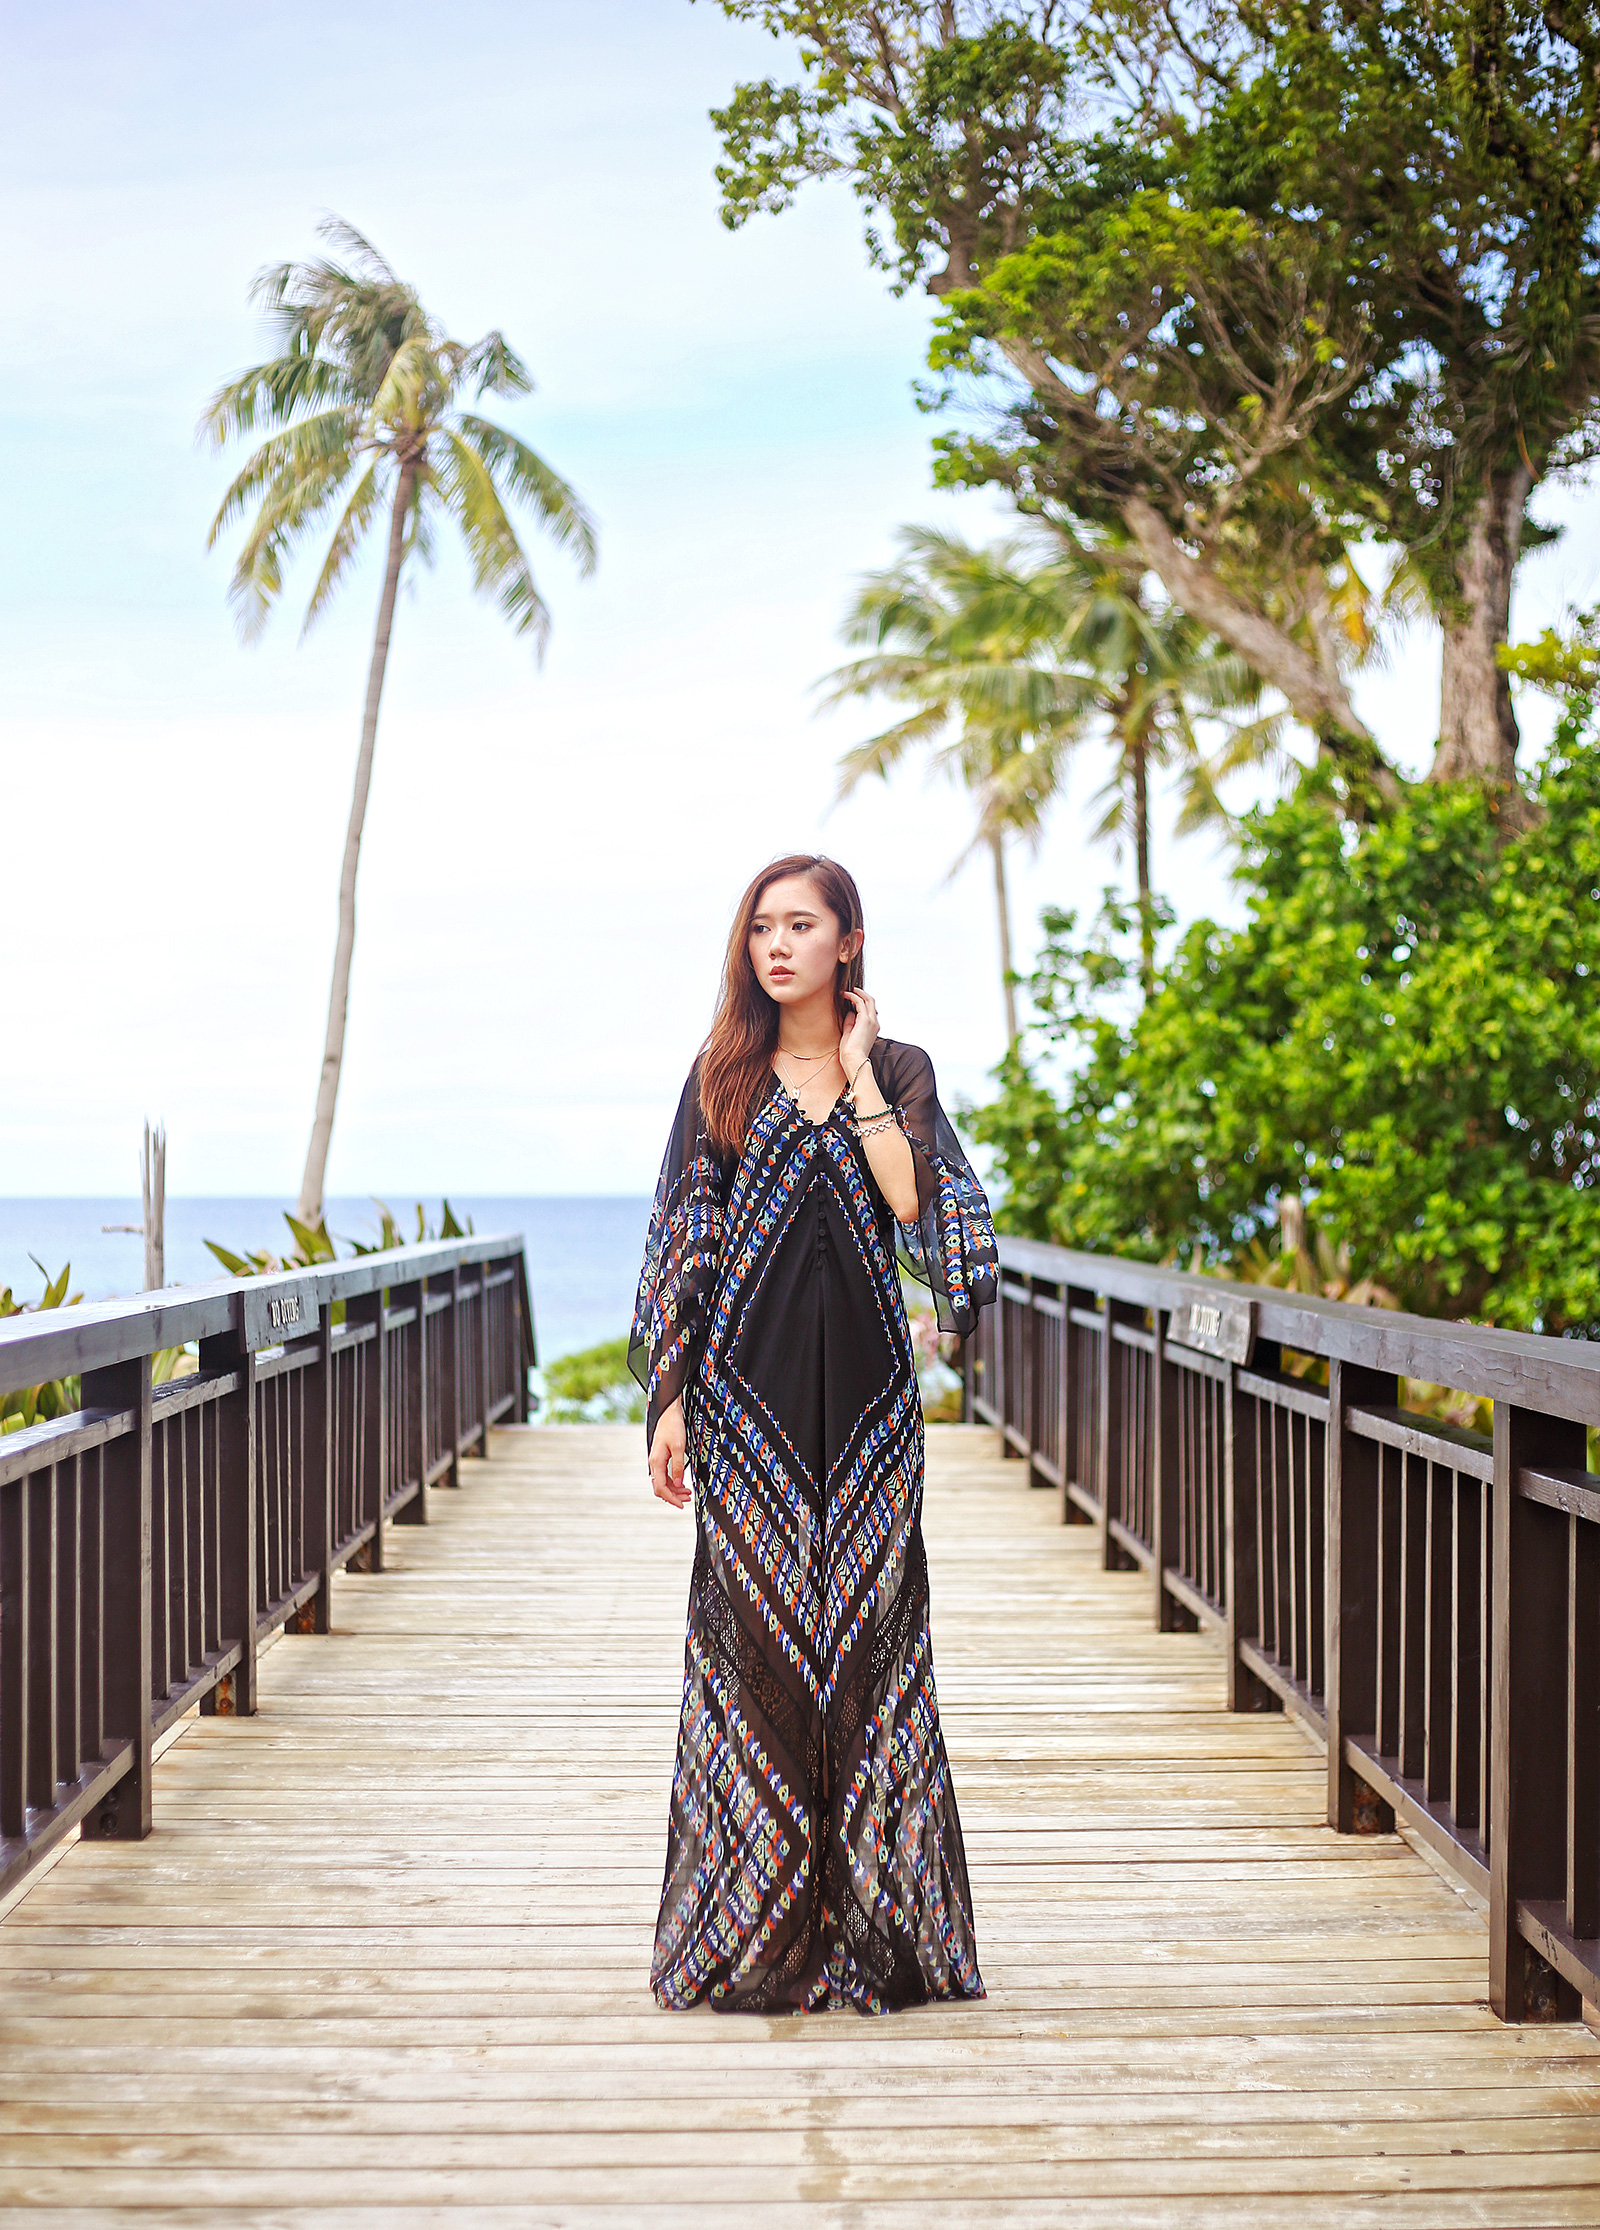 Boho Chic in BCBG Maxi Dress At Balesin | www.itscamilleco.com